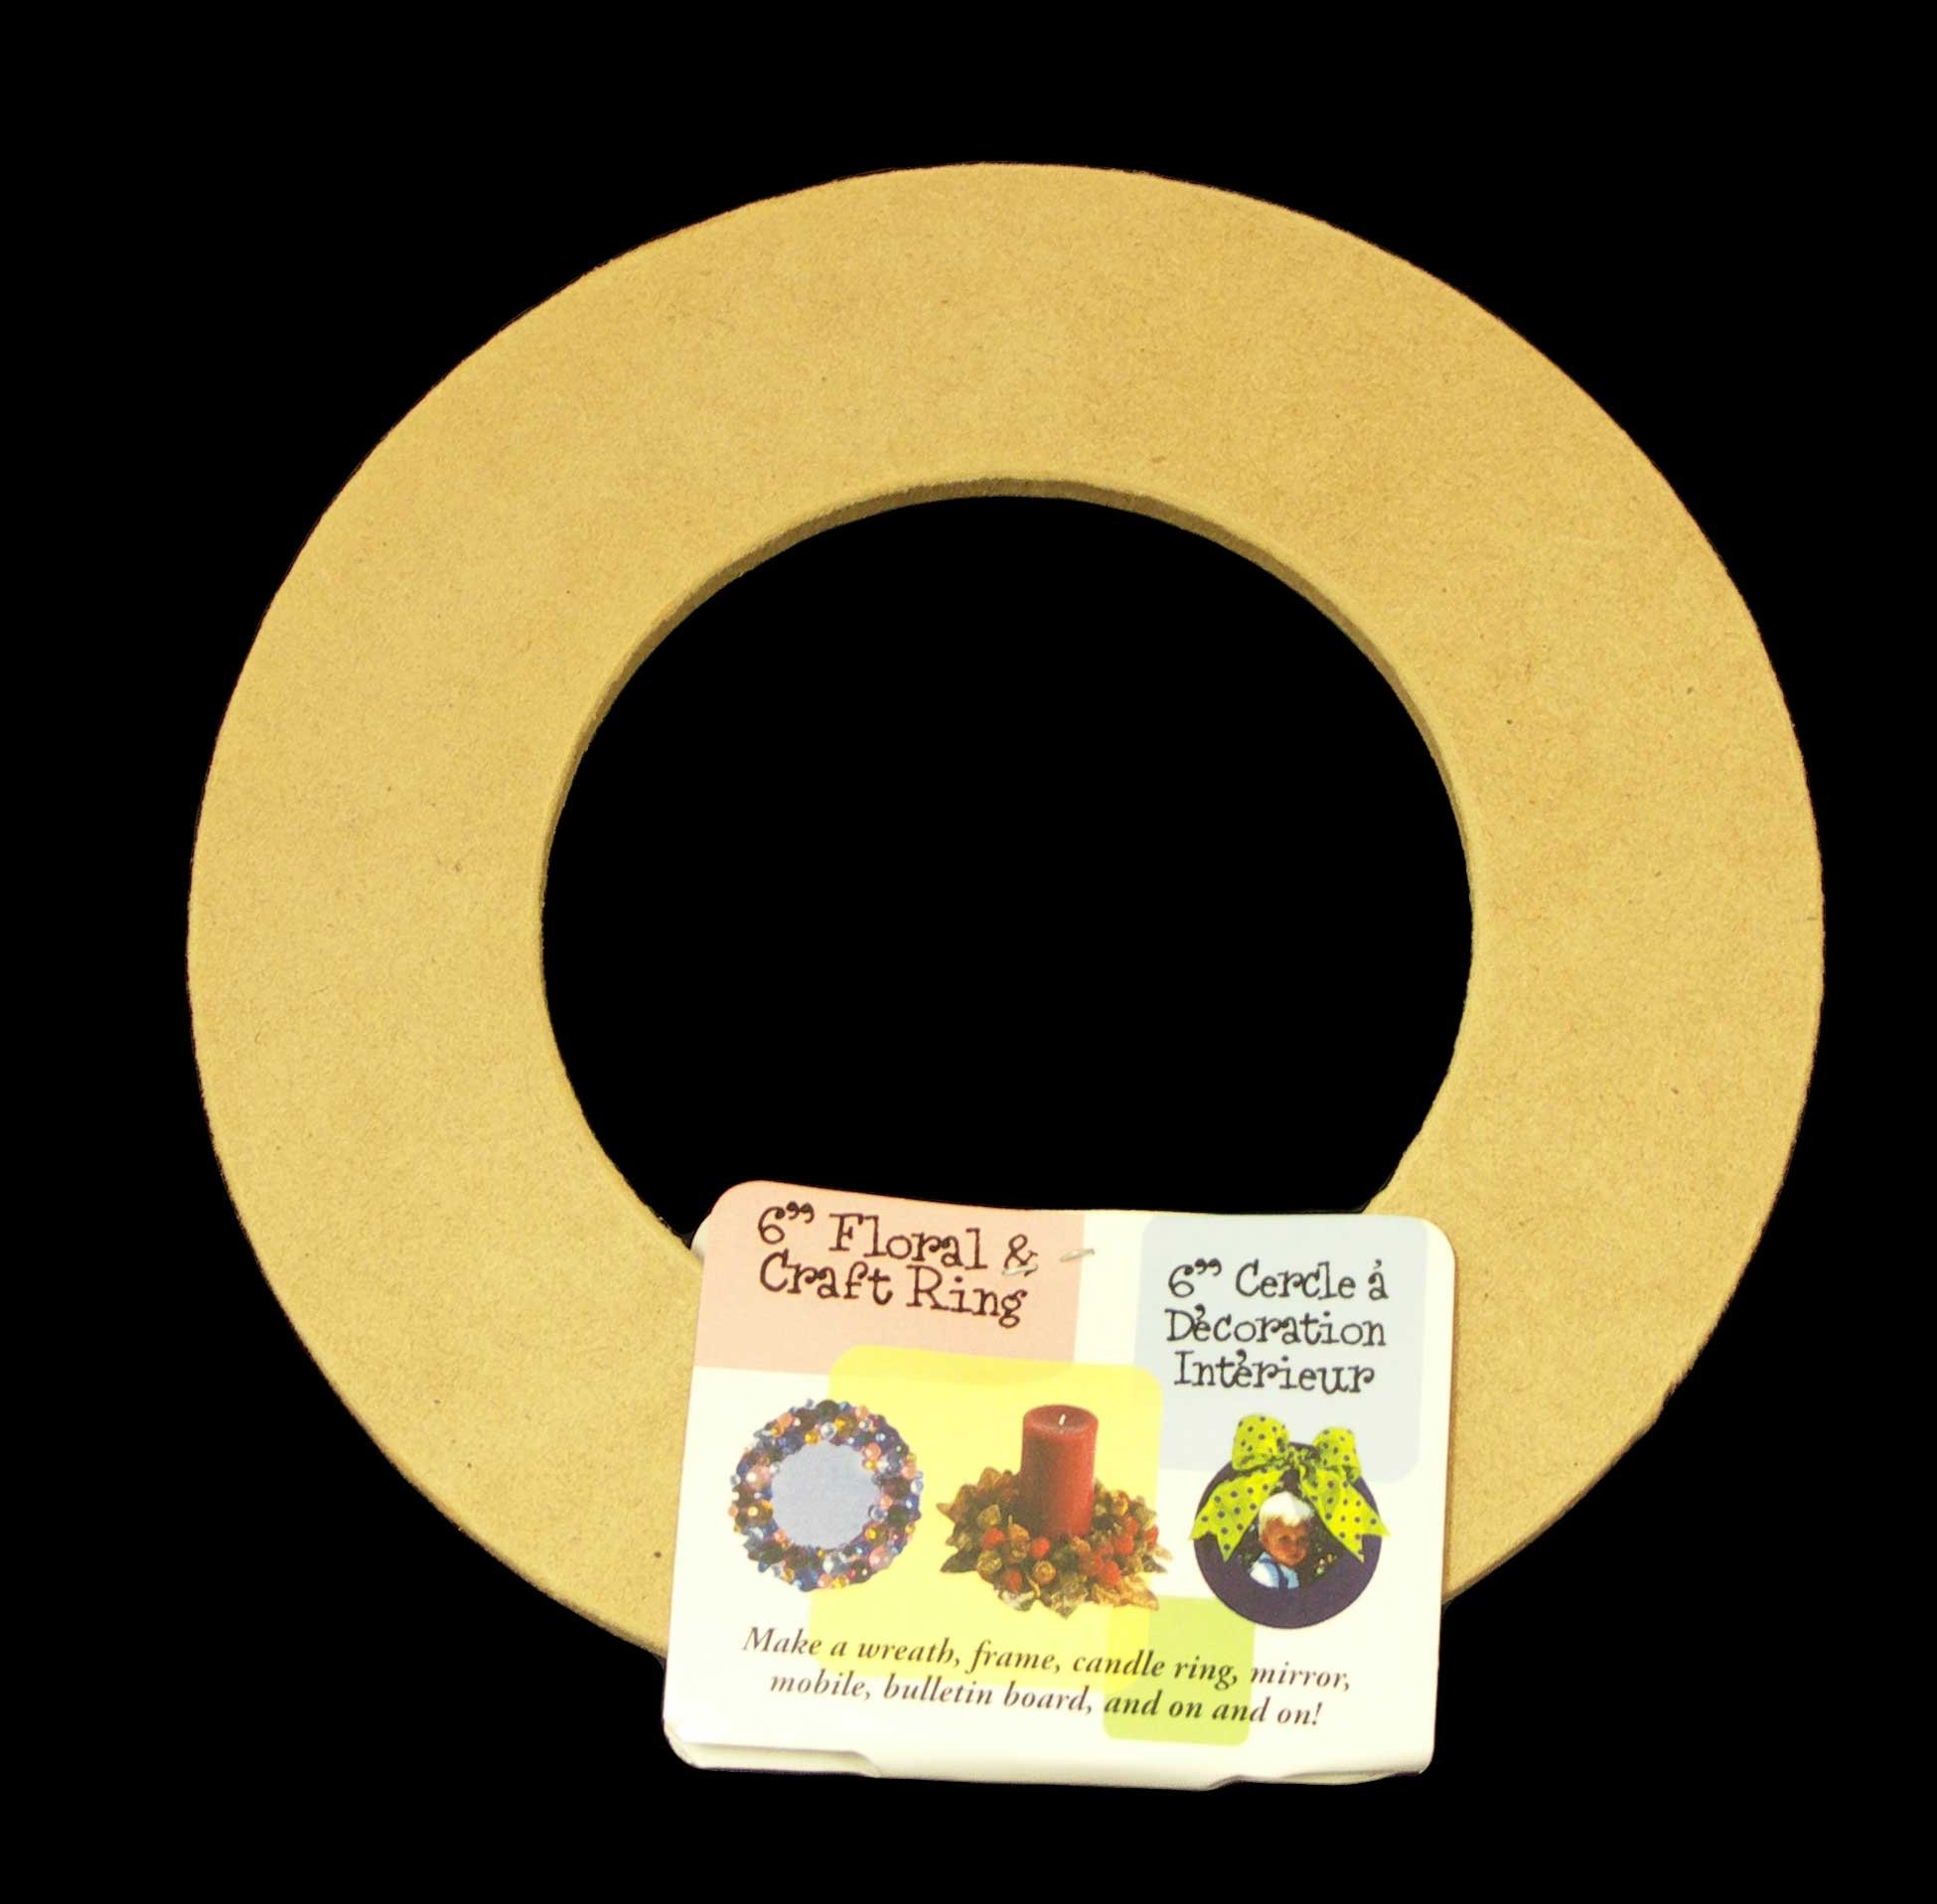 12 Pack, Biodegradable Floral Craft Ring, 6'', Ez Glueable Wreath Form, for Photo Frame, Candle Ring Etc